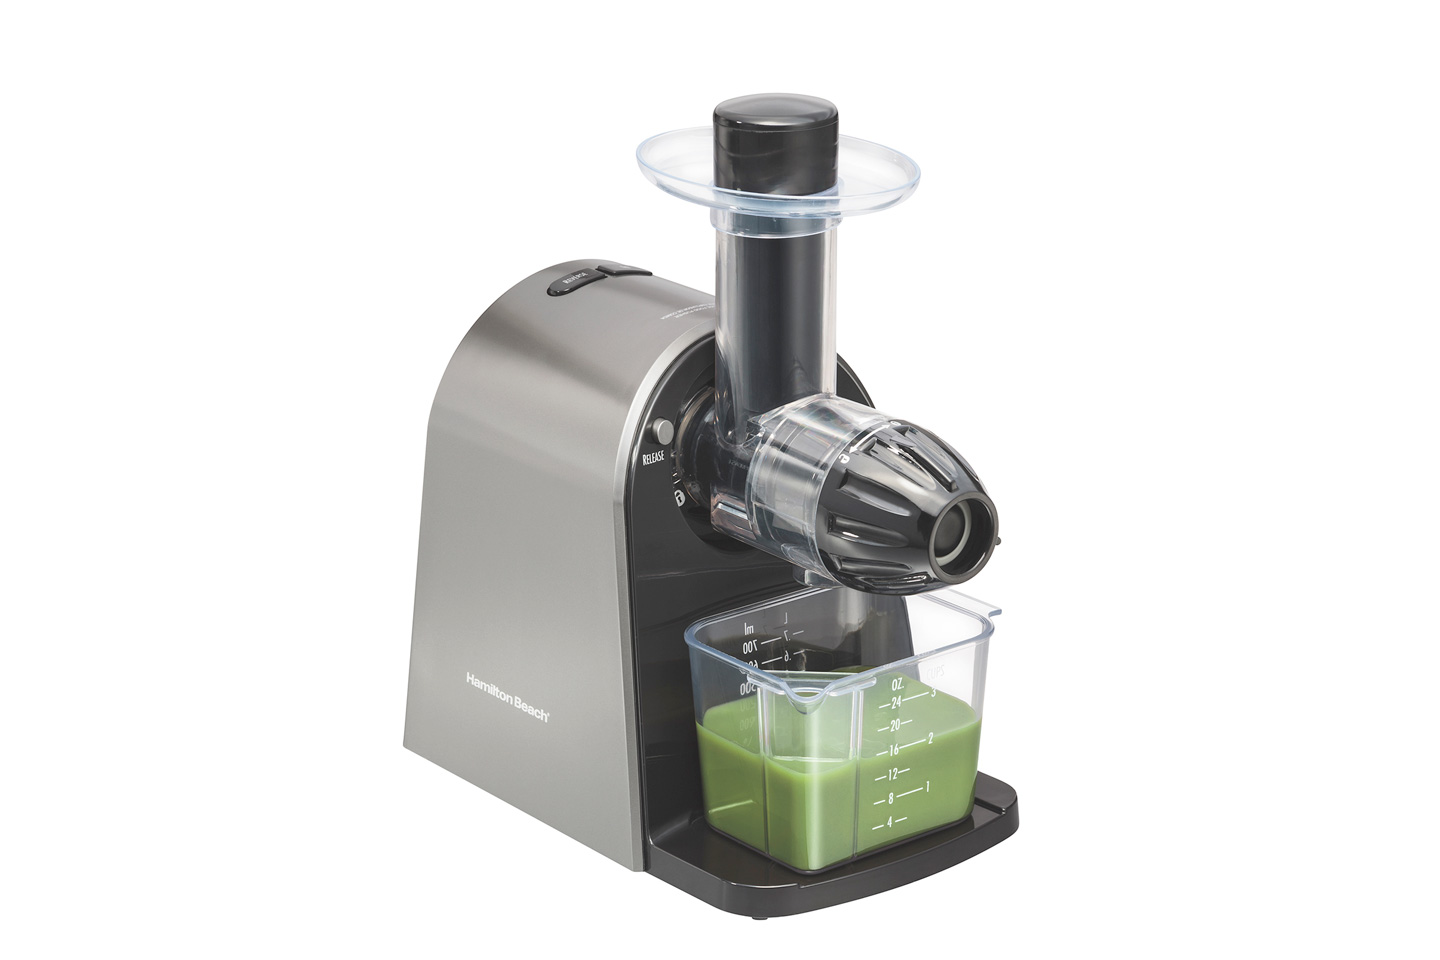 Hamilton Beach Slow Juicer 67951 Review | HeartyBlends.co